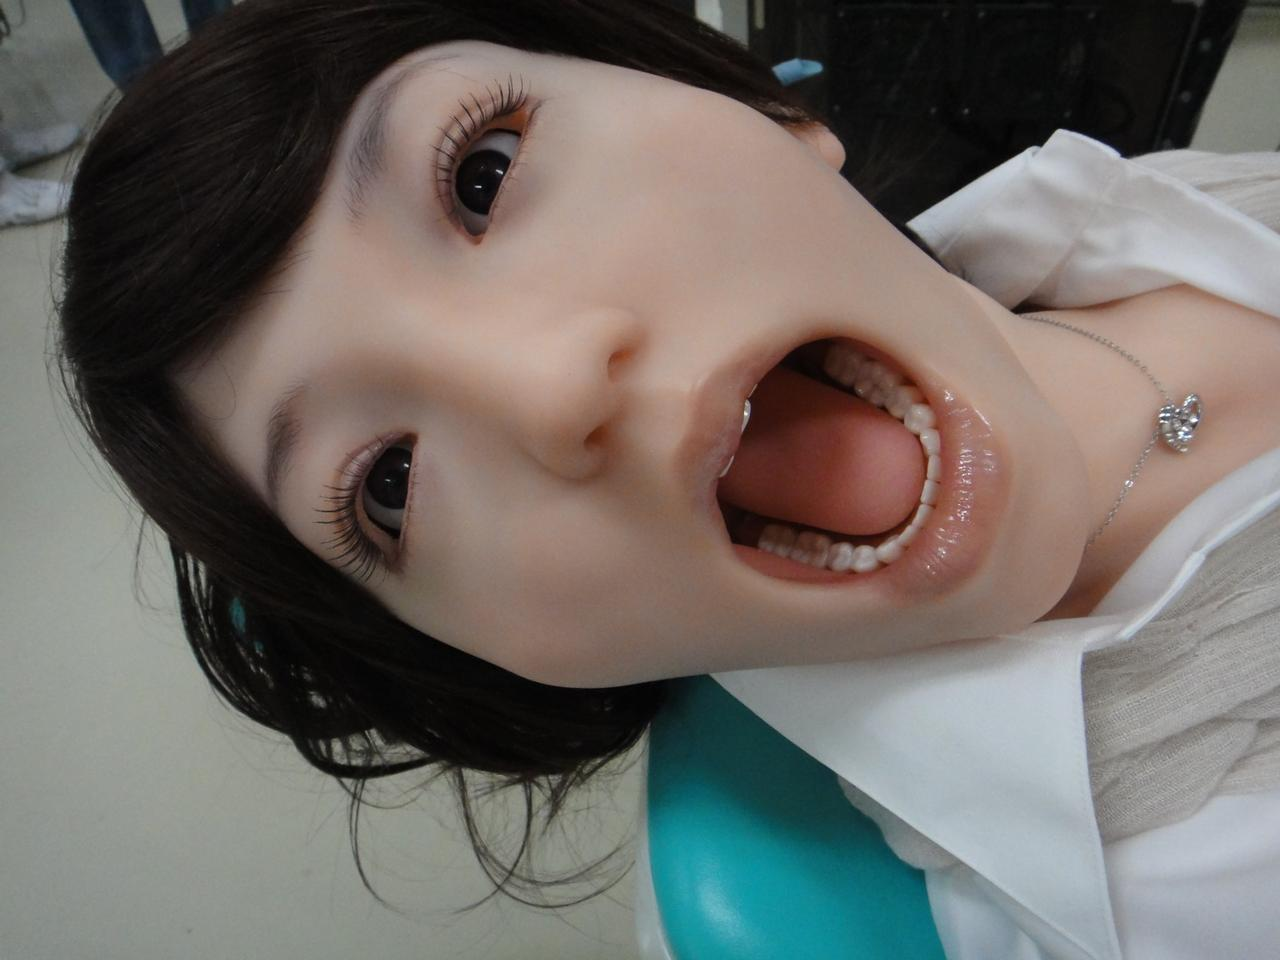 Showa University from Tokyo has presented a highly realistic robotic dental patient Showa Hanako 2 (Photo: DigInfo).